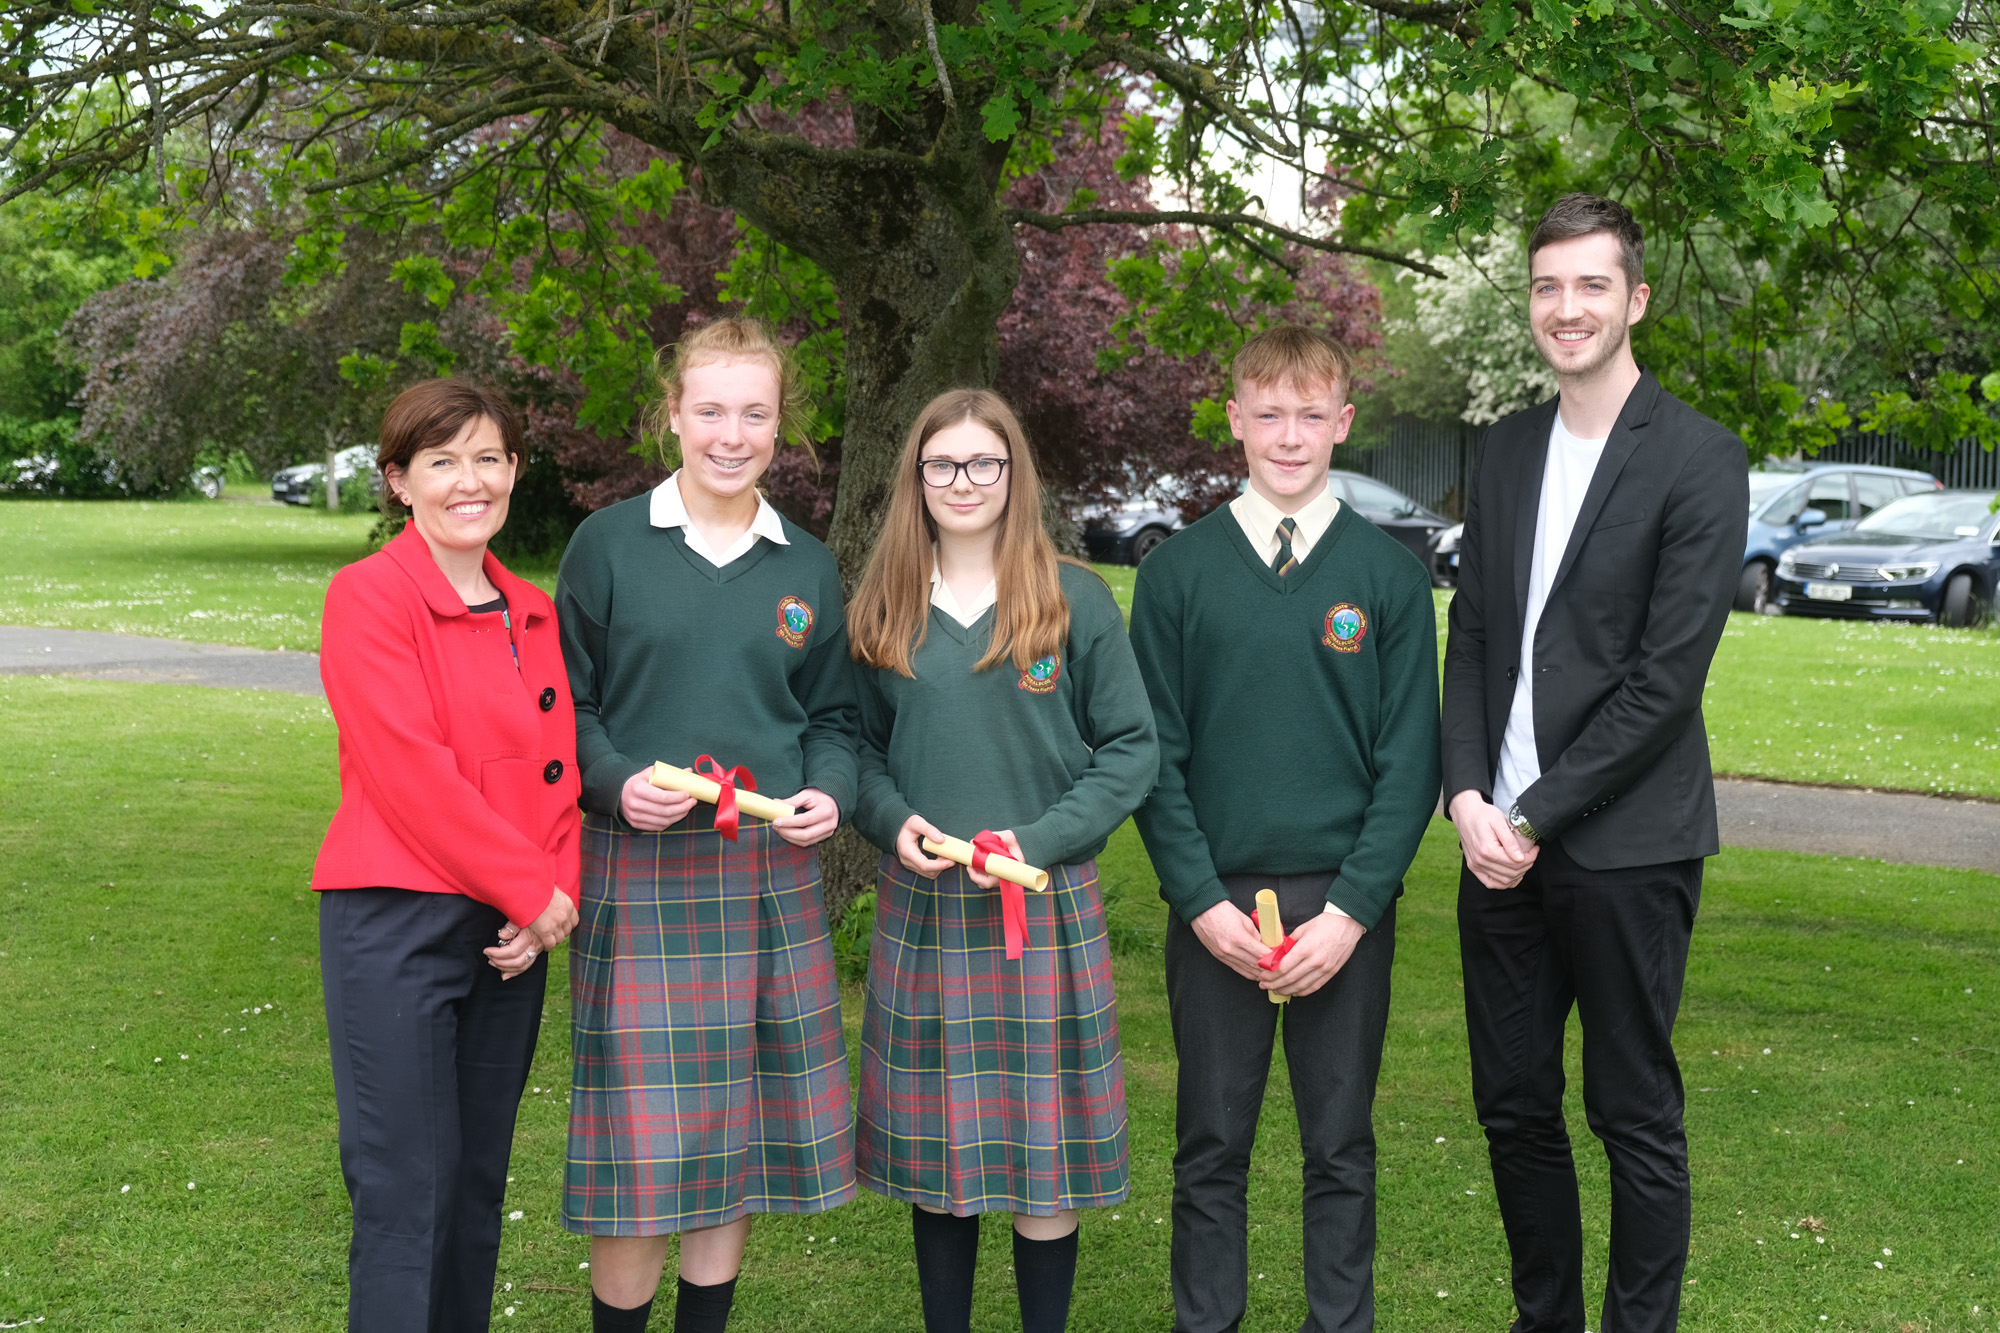 2nd Year Sports Award  Louise Doran, Emily Smyth, Hanna Daly, Paul Donnellan, Evan Kirwan.